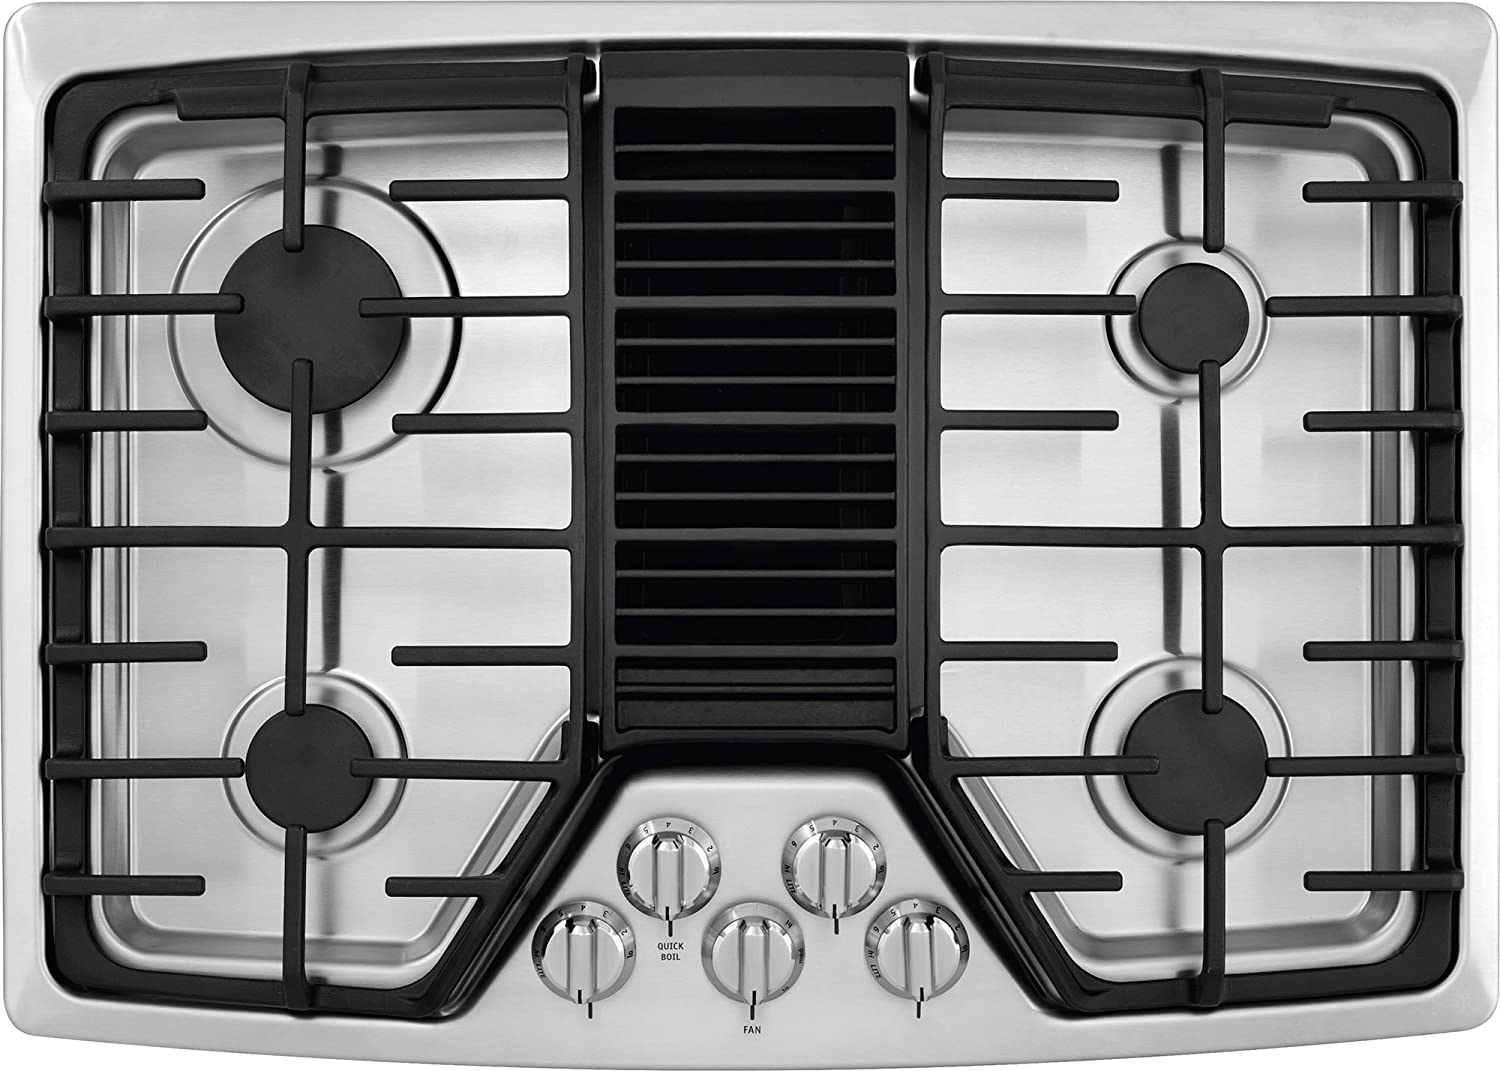 "Frigidaire 30"" Built In Downdraft Stainless Steel Gas Cooktop RC30DG60PS"